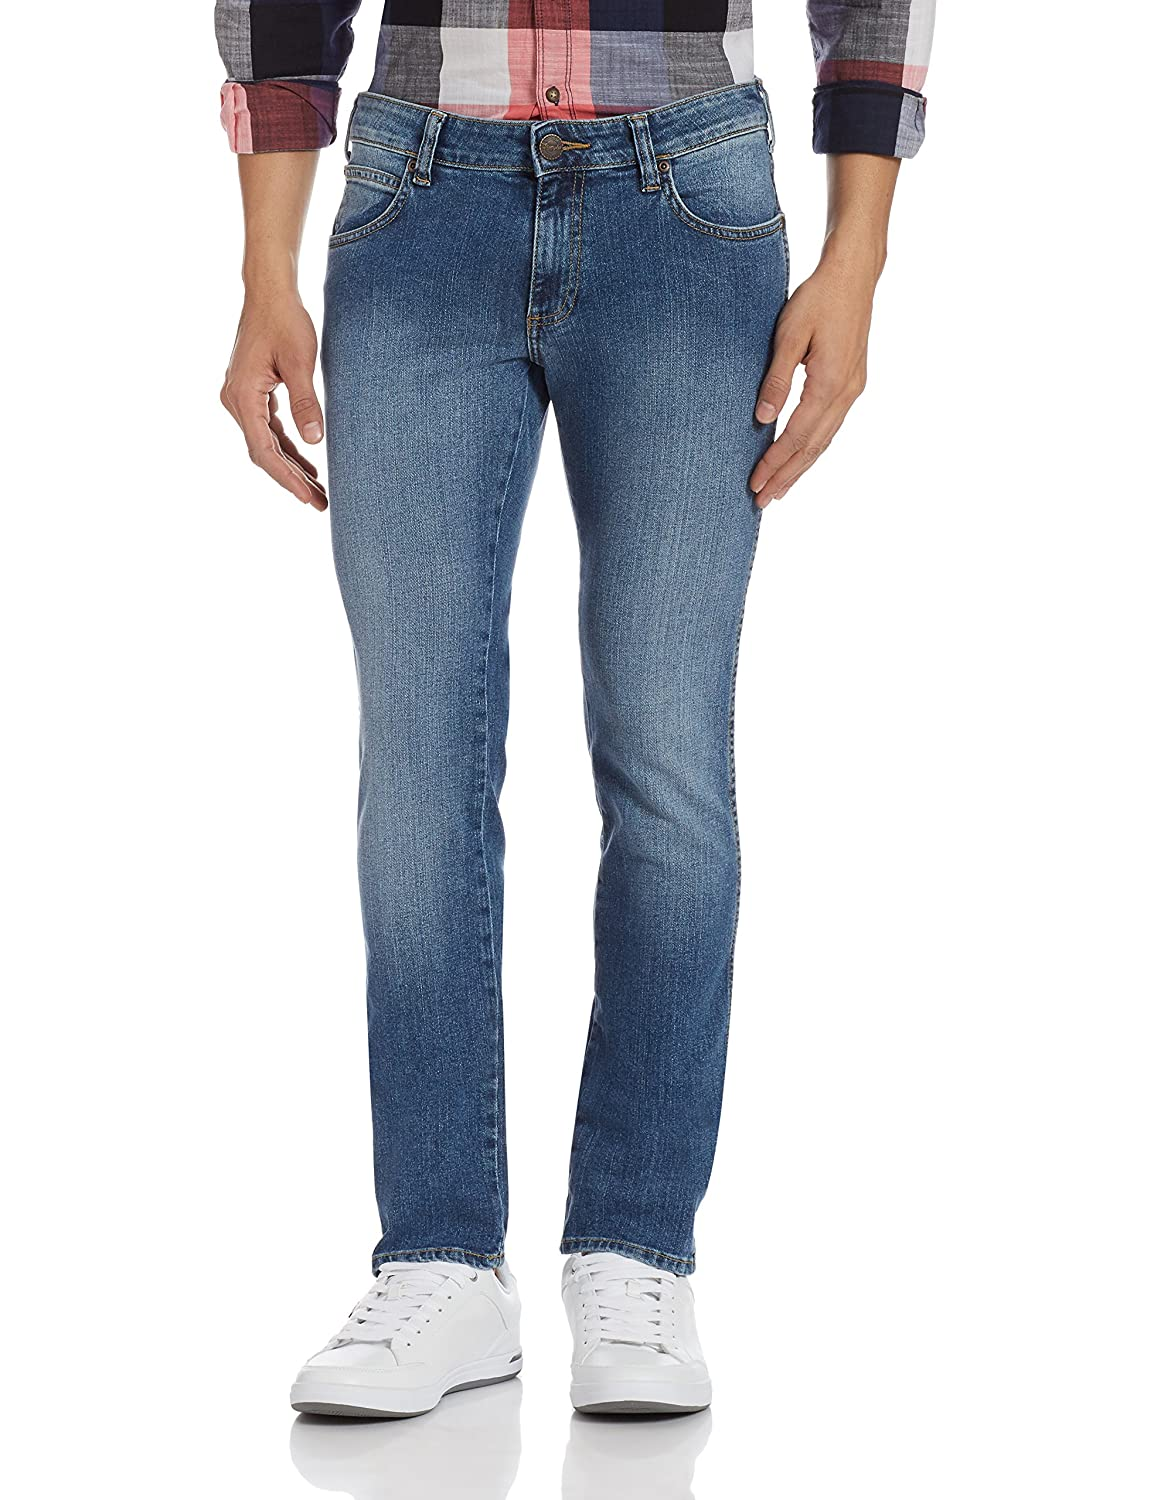 Academy Sports & Outdoors offers the Magellan Outdoors Men's 5-Pocket Jeans in Boot Cut (Dark Star pictured), Classic Fit, Loose Fit, or Relaxed Fit for $ plus $ for shipping. That's up to $5 off and the best price we could find, although we saw the boot cut jeans for $9 less the week of Black Friday.